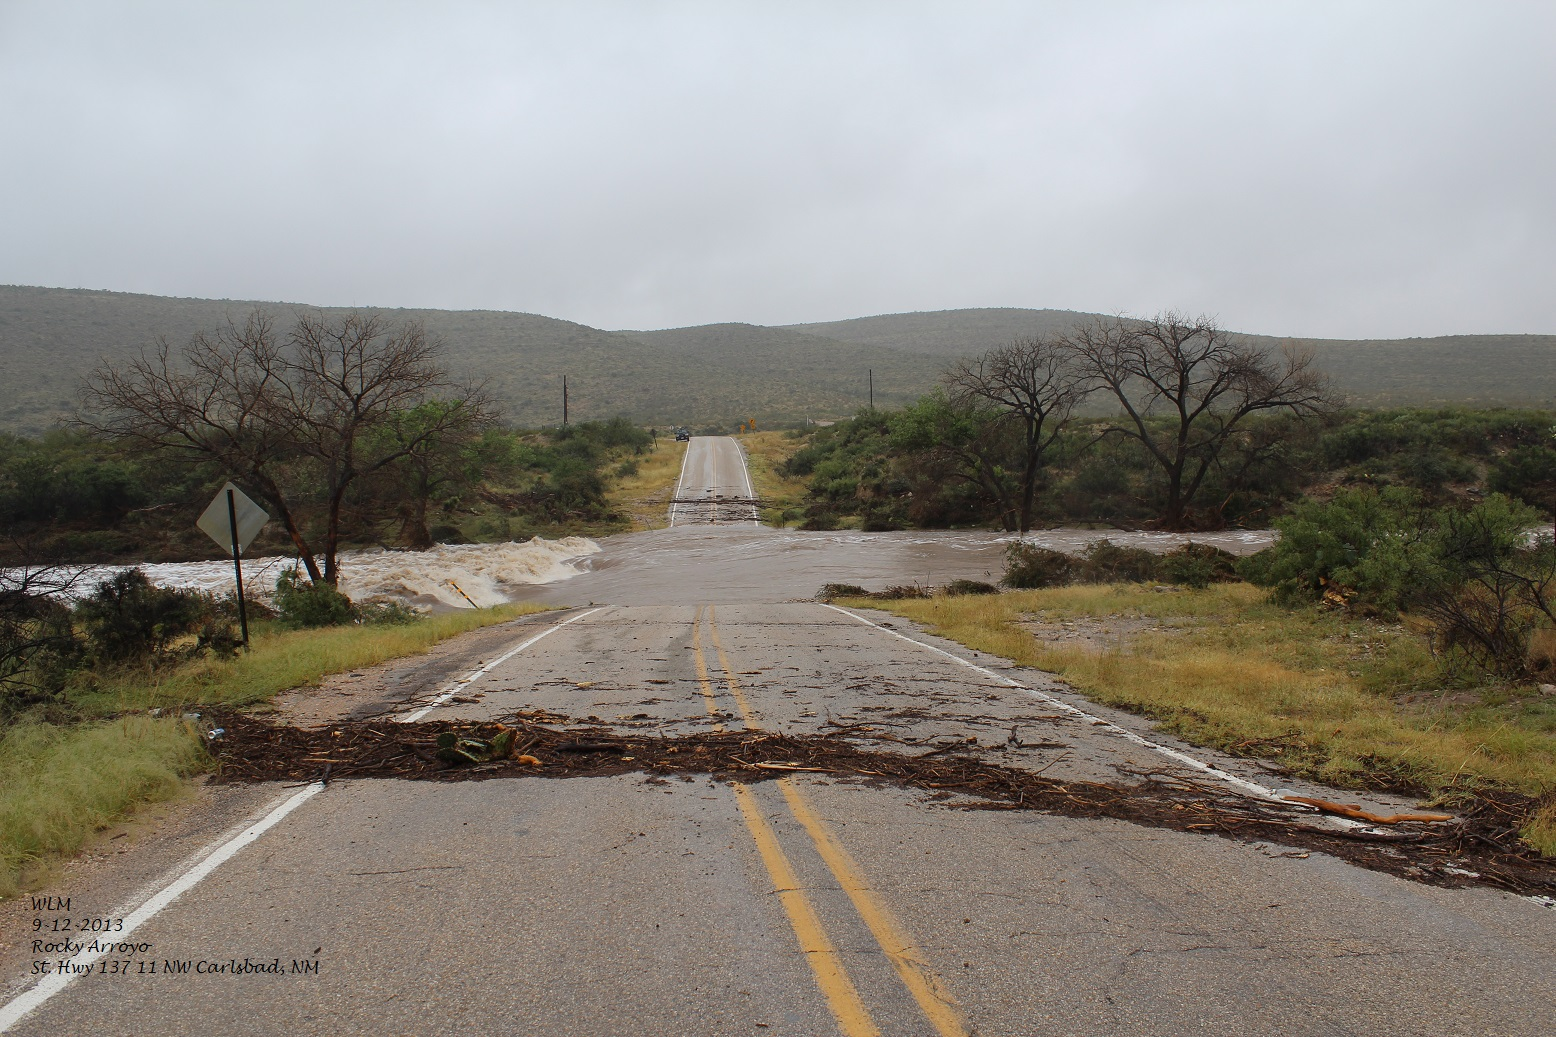 New mexico eddy county - St Hwy 137 11 Miles Northwest Of Carlsbad Nm